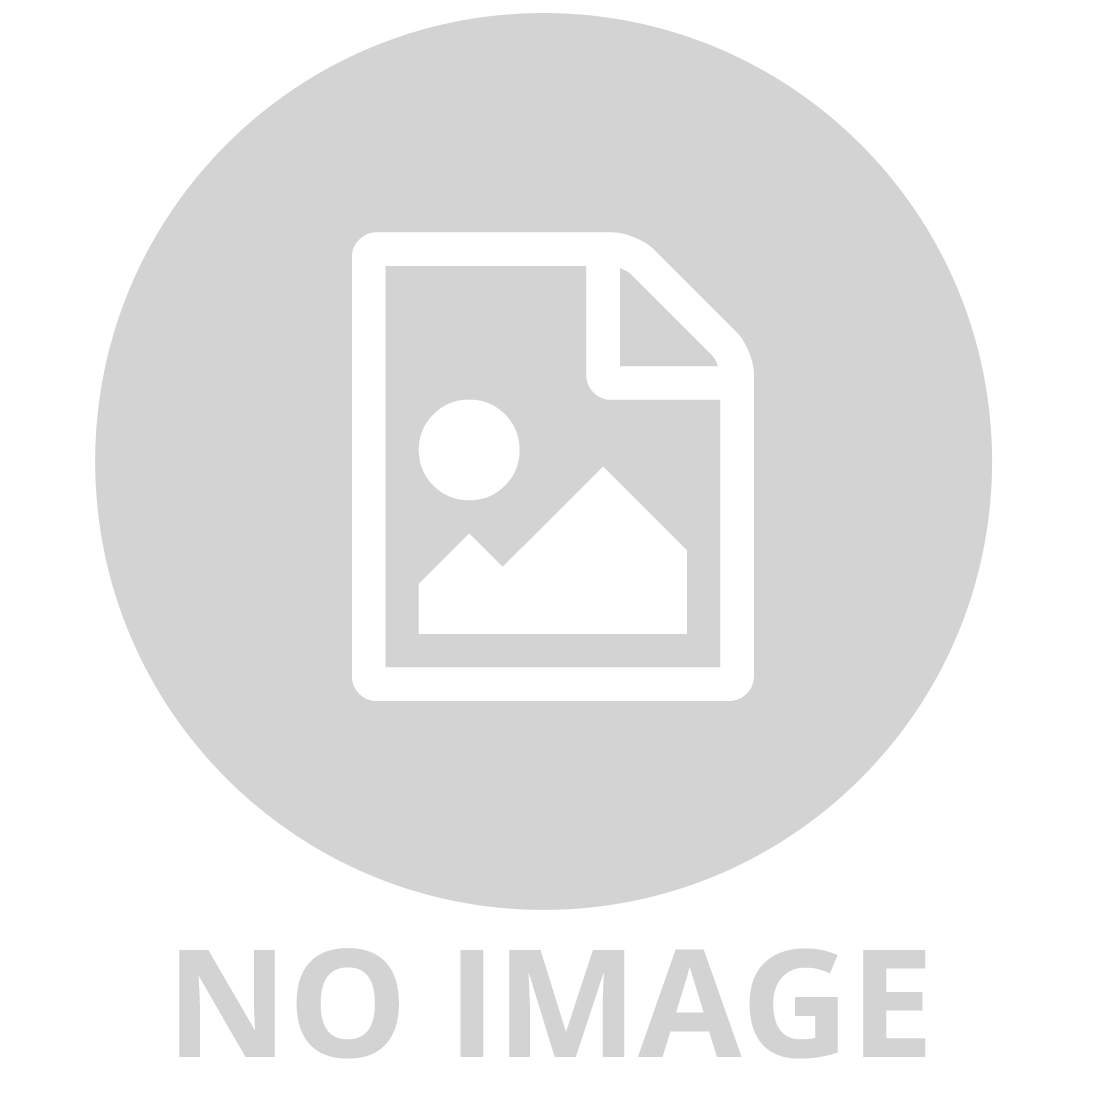 LEGO FRIENDS 4+ 41398 STEPHANIE'S HOUSE